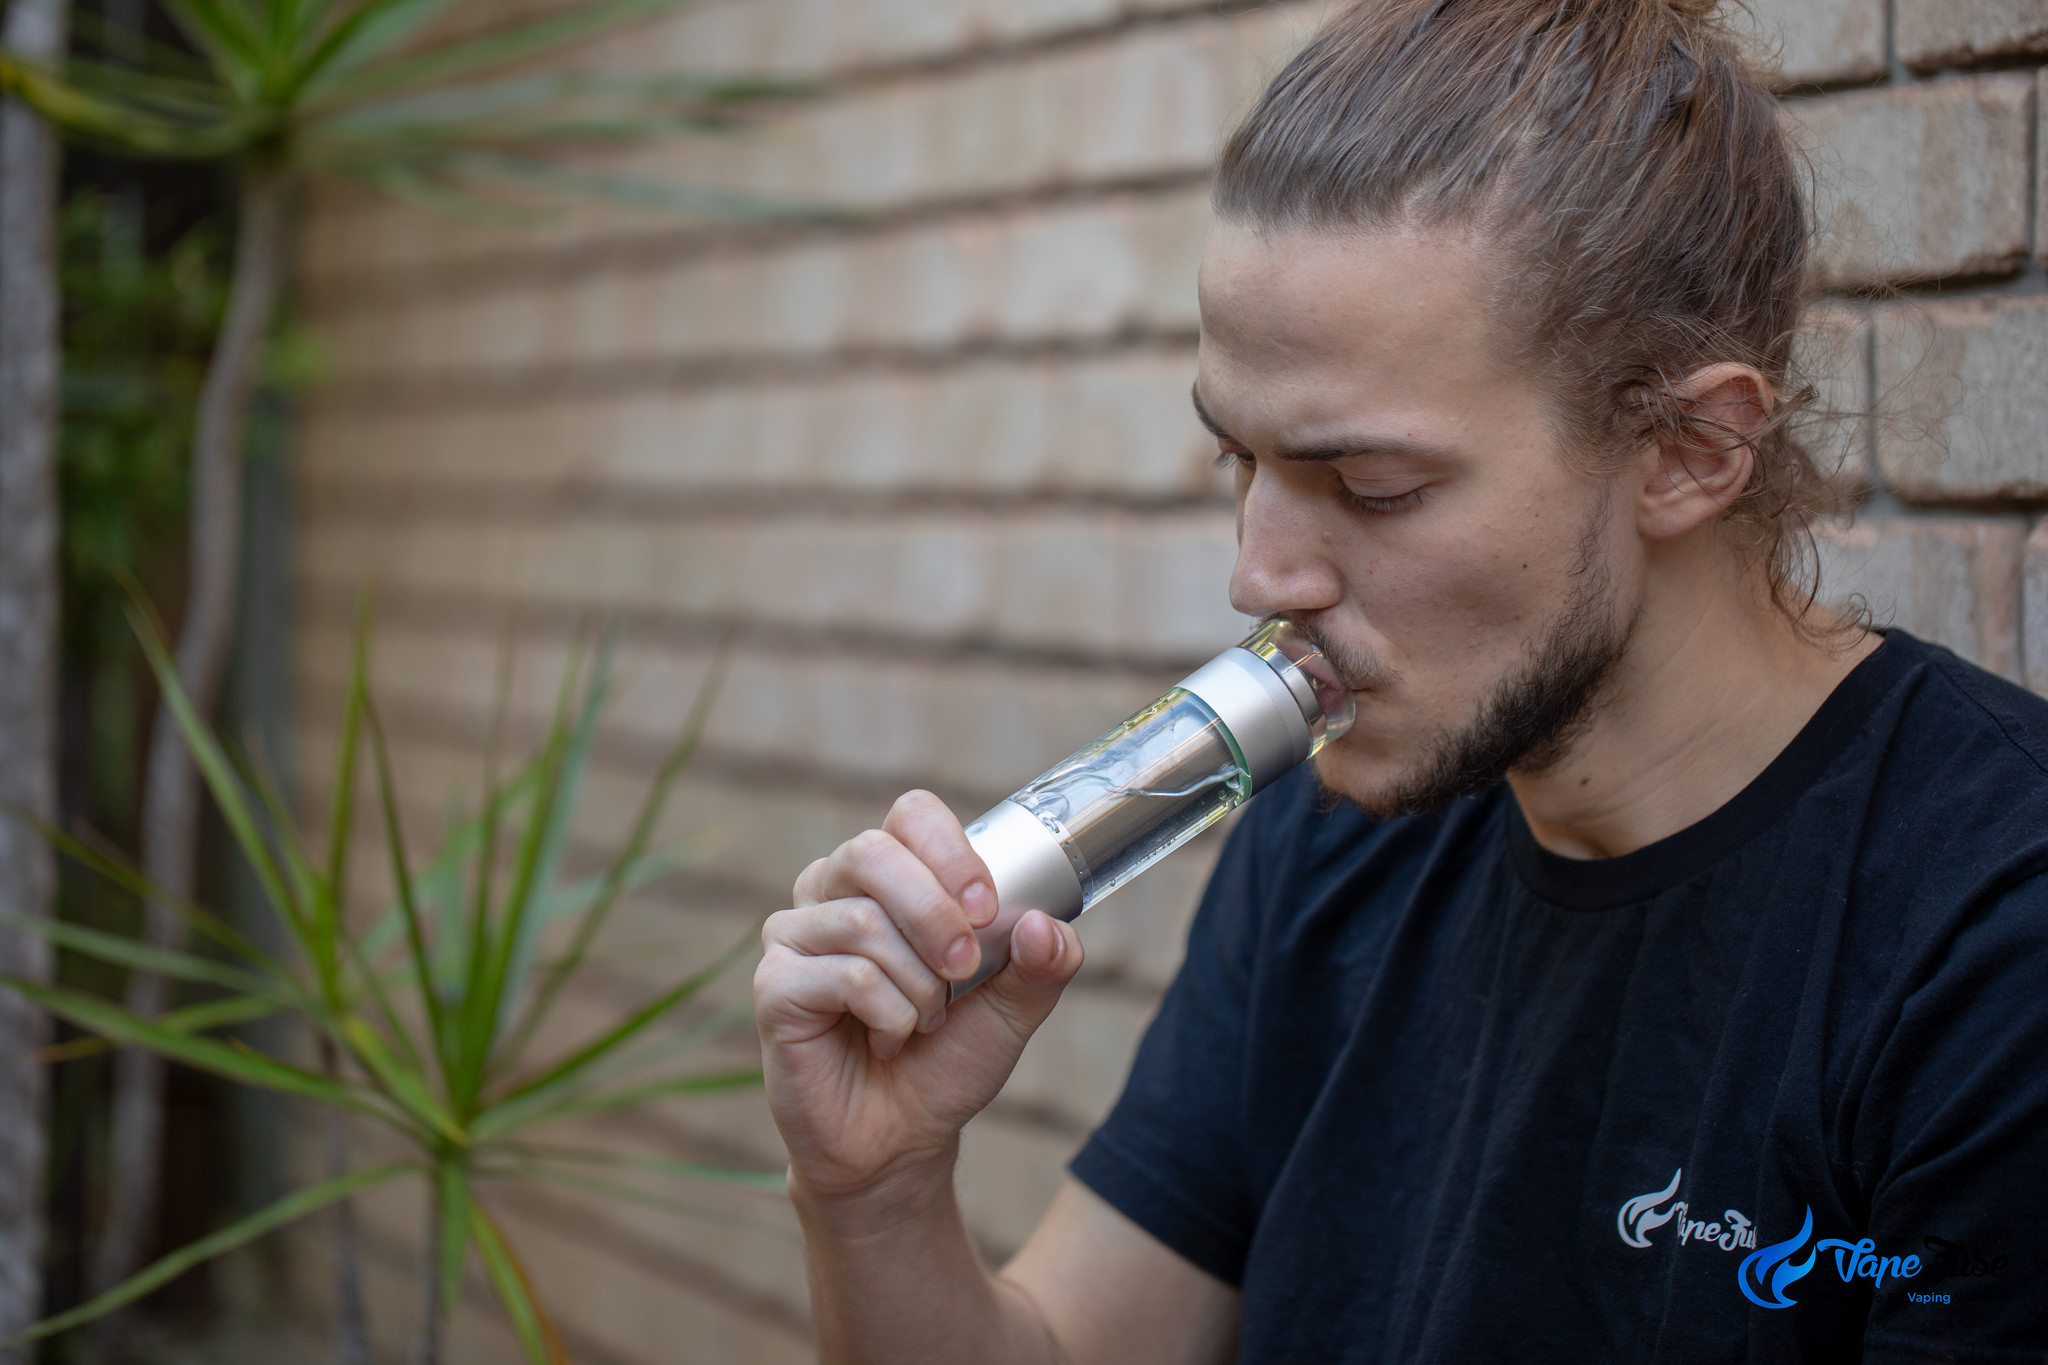 First Session: Hydrology9 Portable Herb Vape by Cloudious9